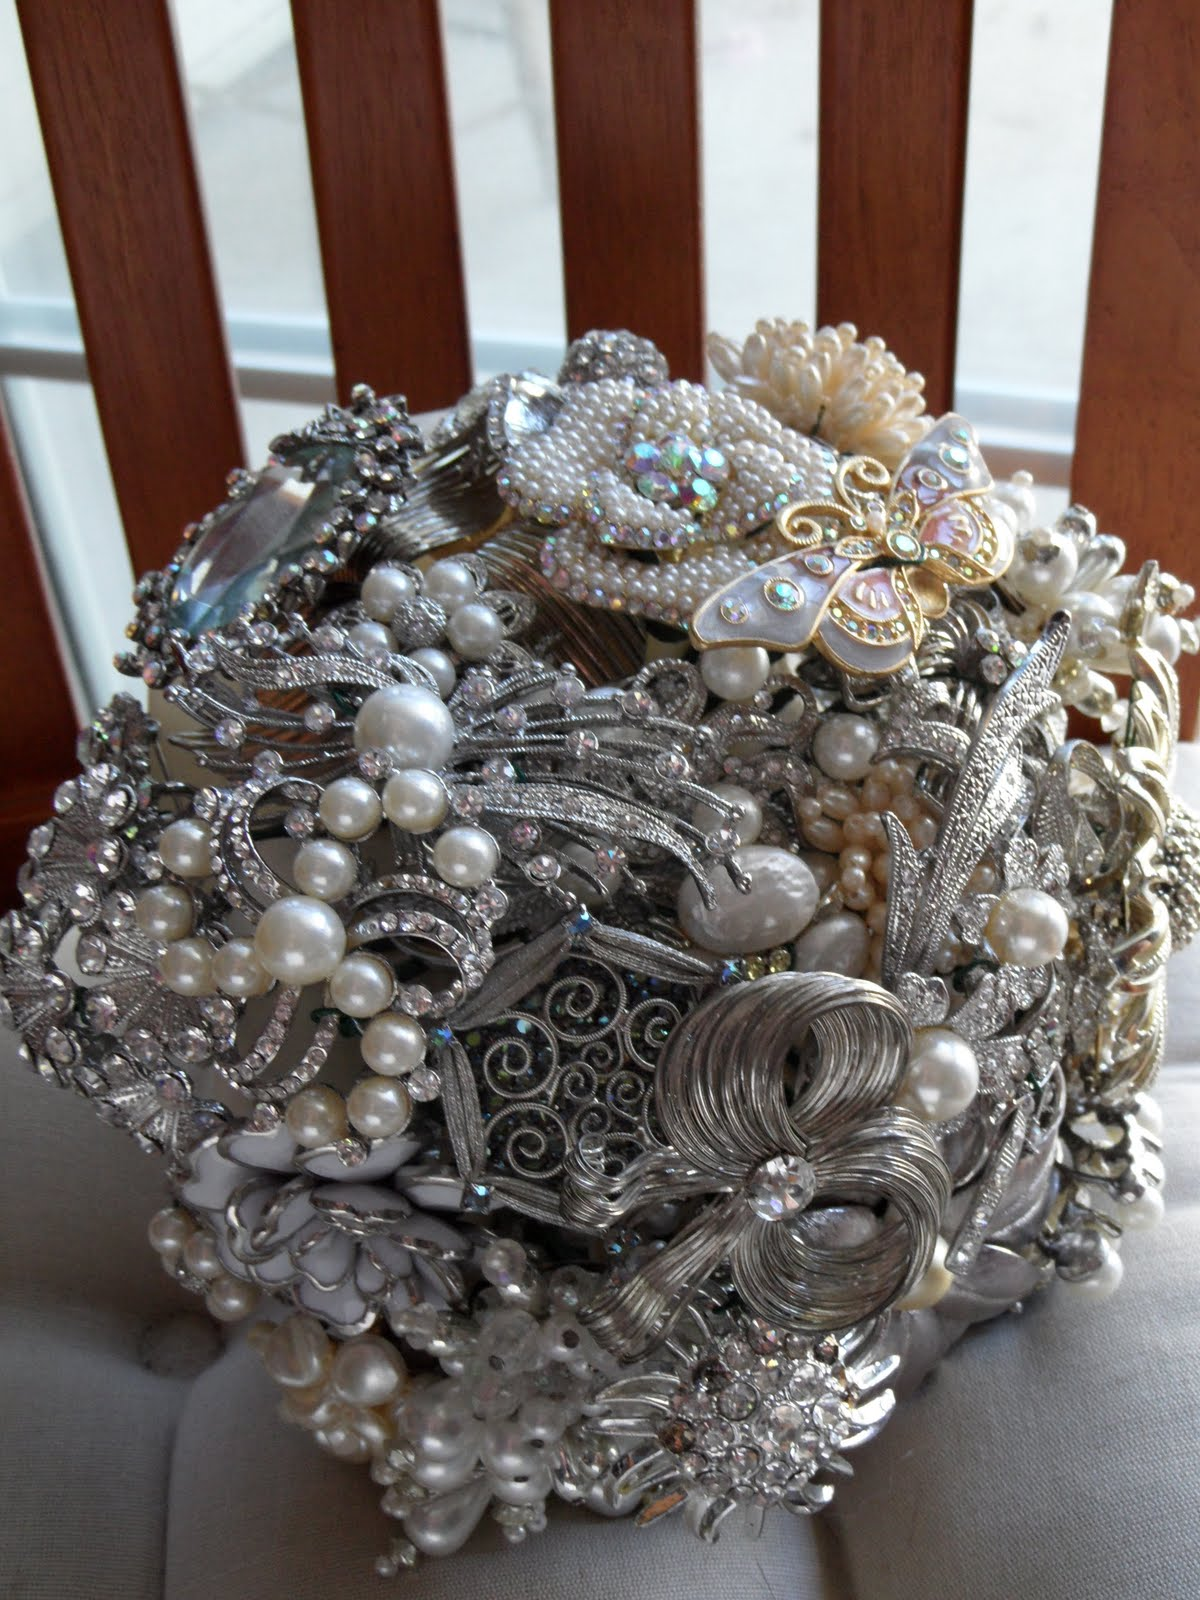 Brooch Bouquet Blog Brooch Bouquets To Die For by ArtistDesigner Amanda Heer